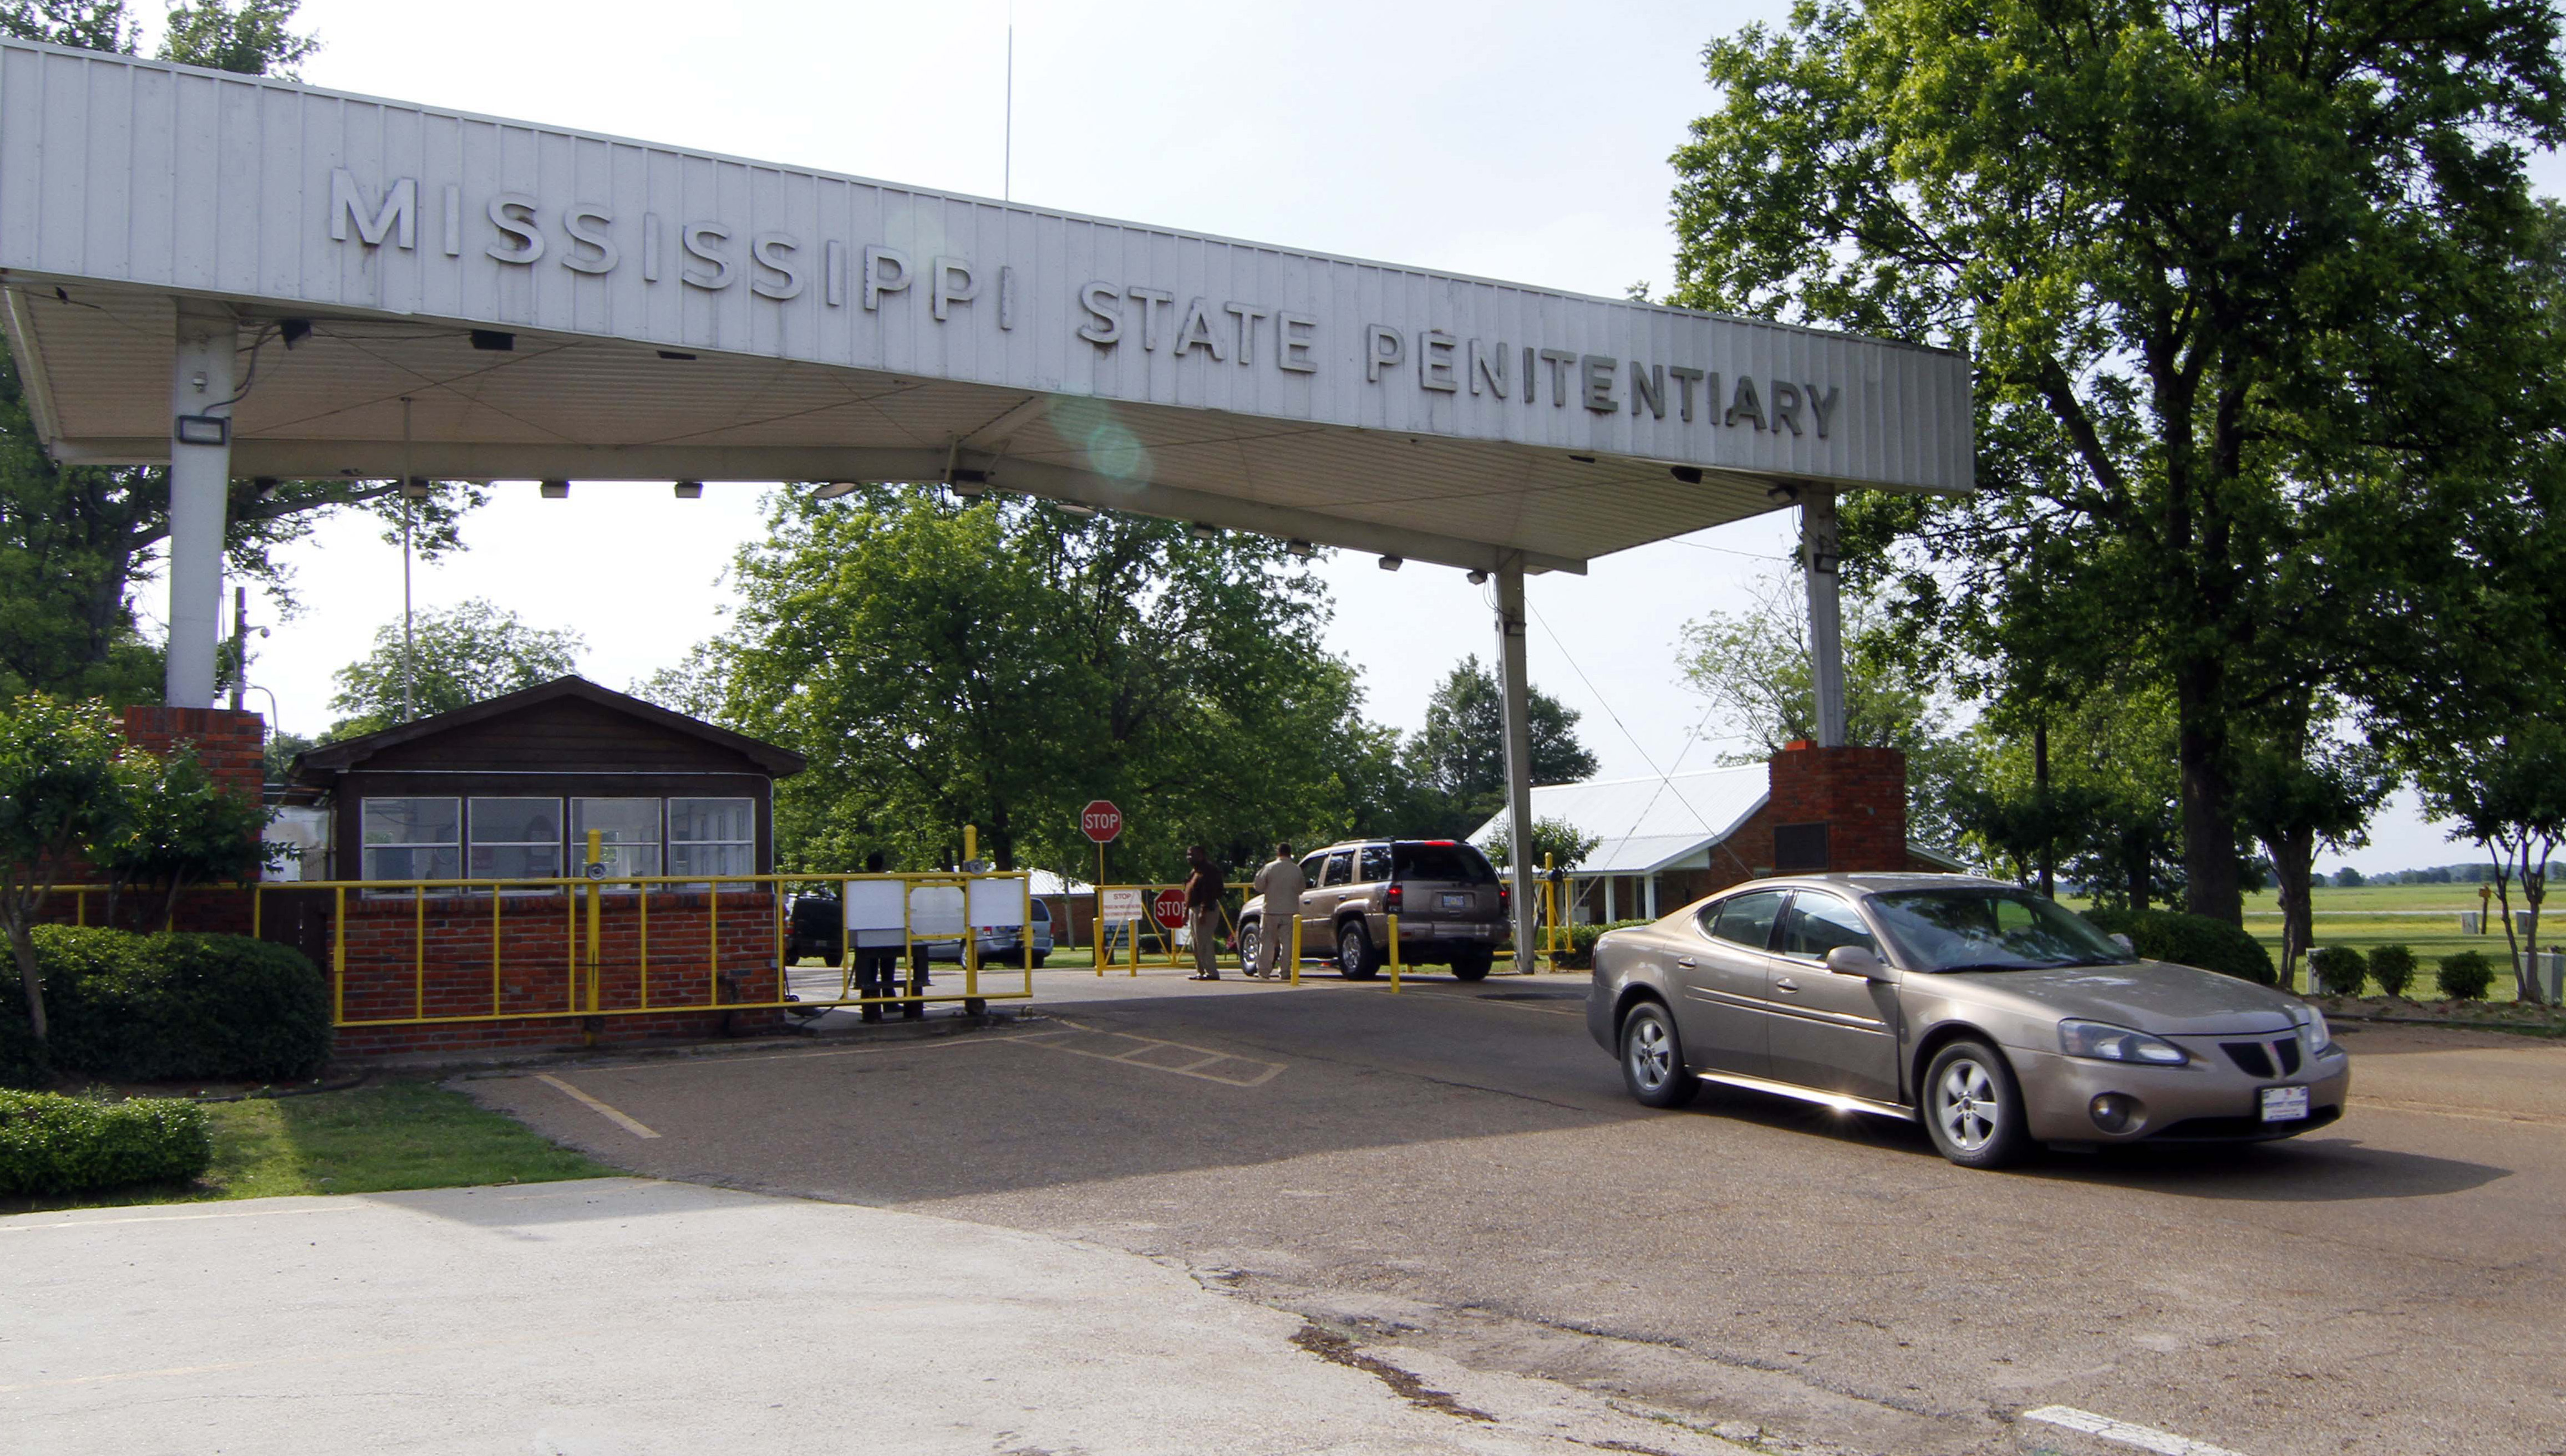 Traffic moves past the front of the Mississippi State Penitentiary in Parchman, Miss. on May 19, 2010. Another Mississippi inmate died at the hands of a fellow inmate on, Jan. 2, 2020, this time, at the penitentiary, bringing the death toll to four amid disturbances over the past week in the state prison system.